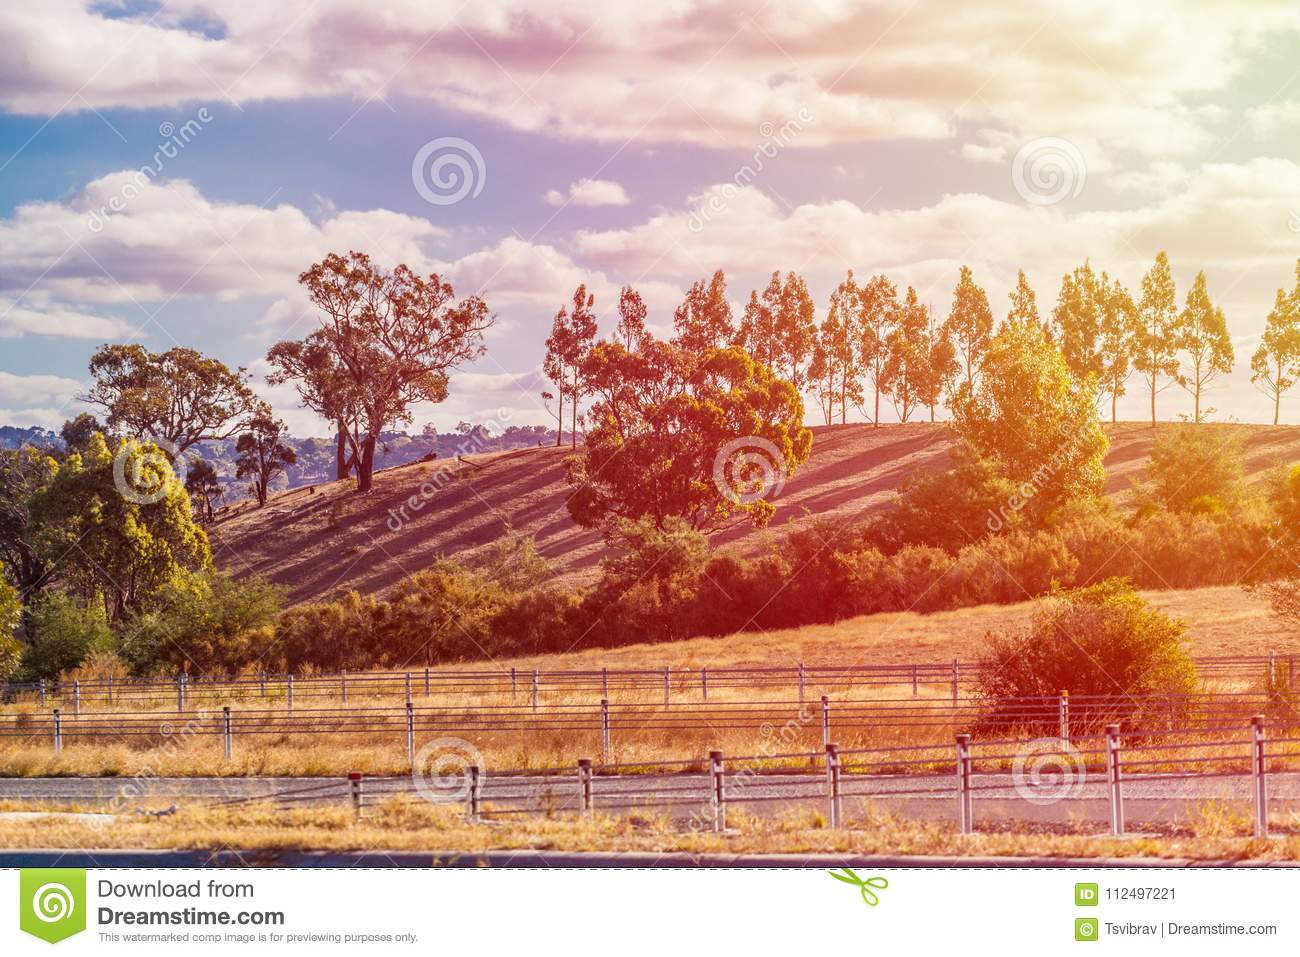 Download Sunset In Australian Countryside. Long Shadows From Trees And Sun Flare Stock Image - Image of sunrise, agriculture: 112497221